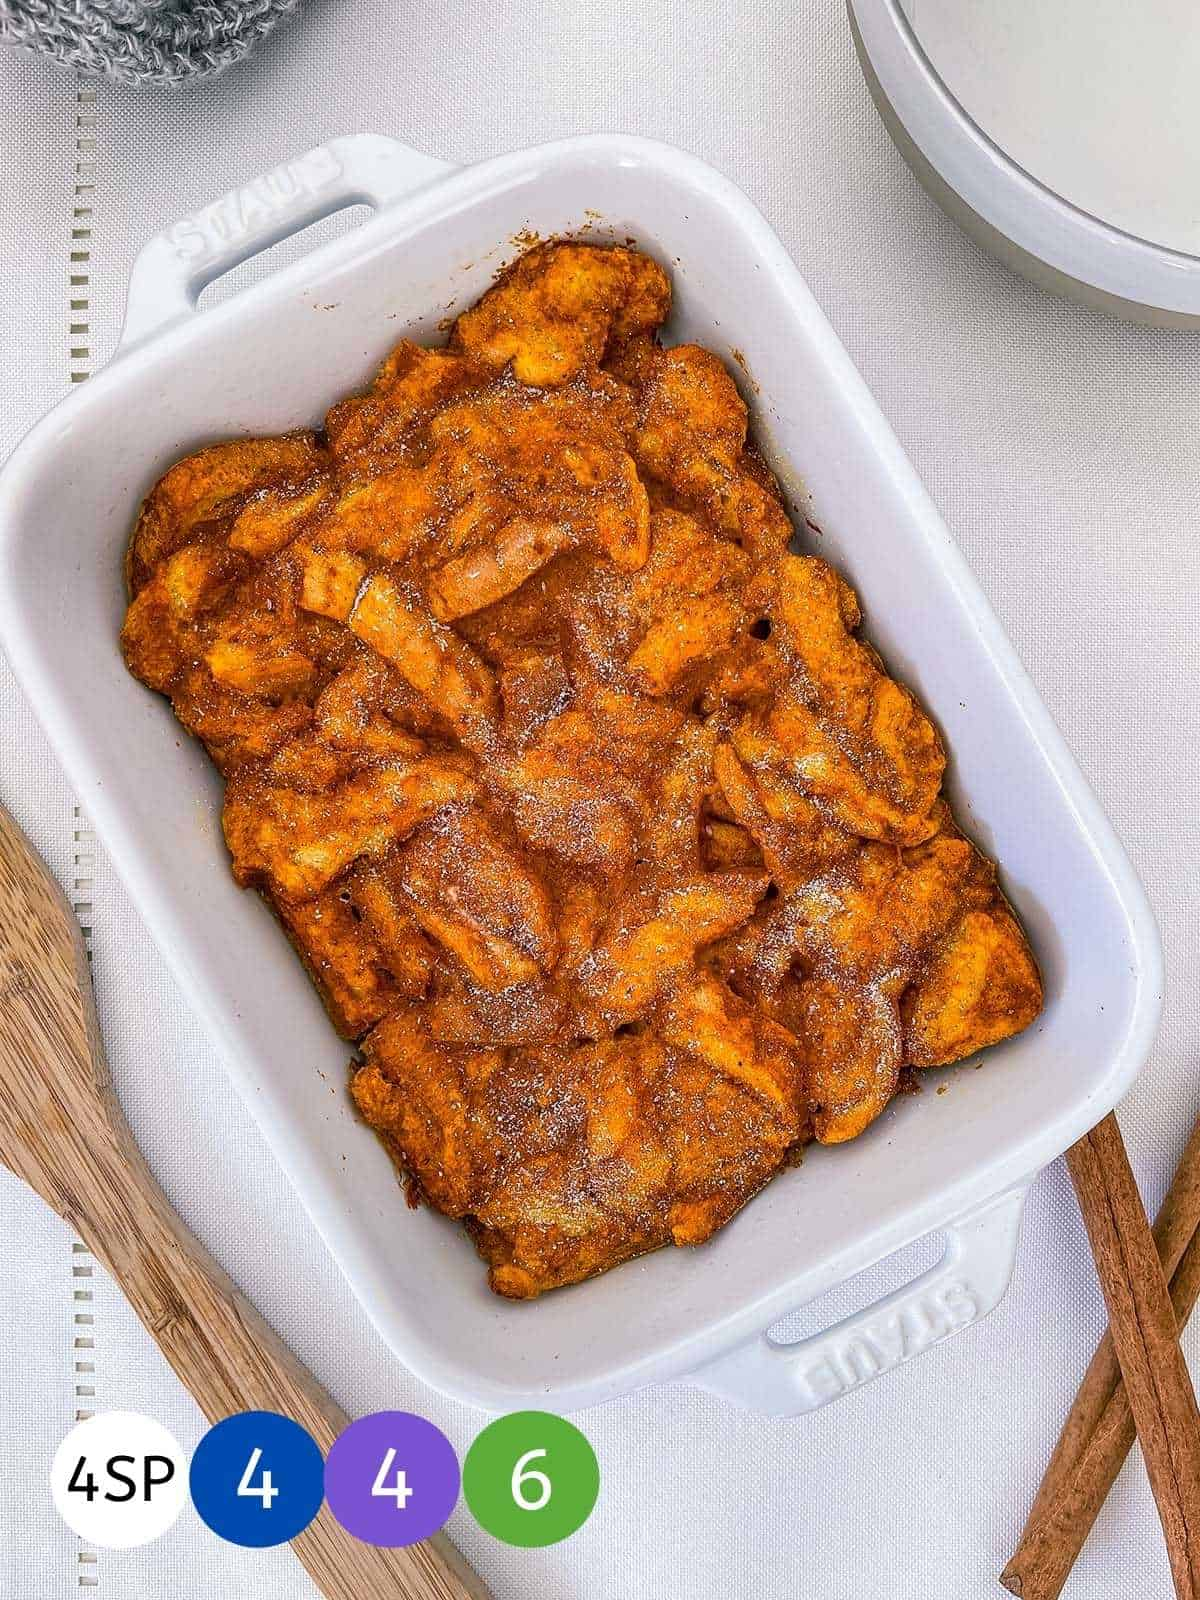 A dish of pumpkin french toast casserole on a white table with cinnamon sticks.